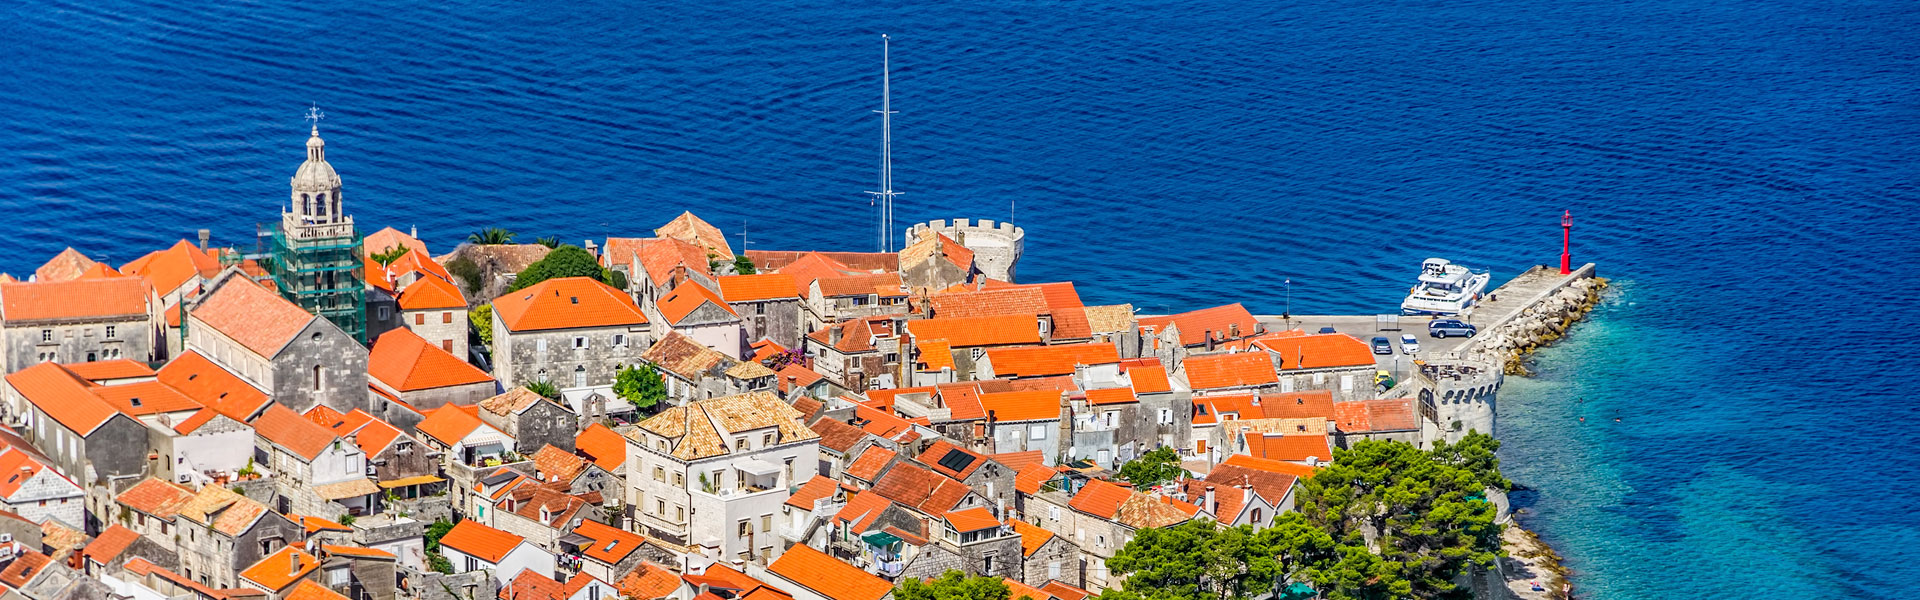 city of korcula